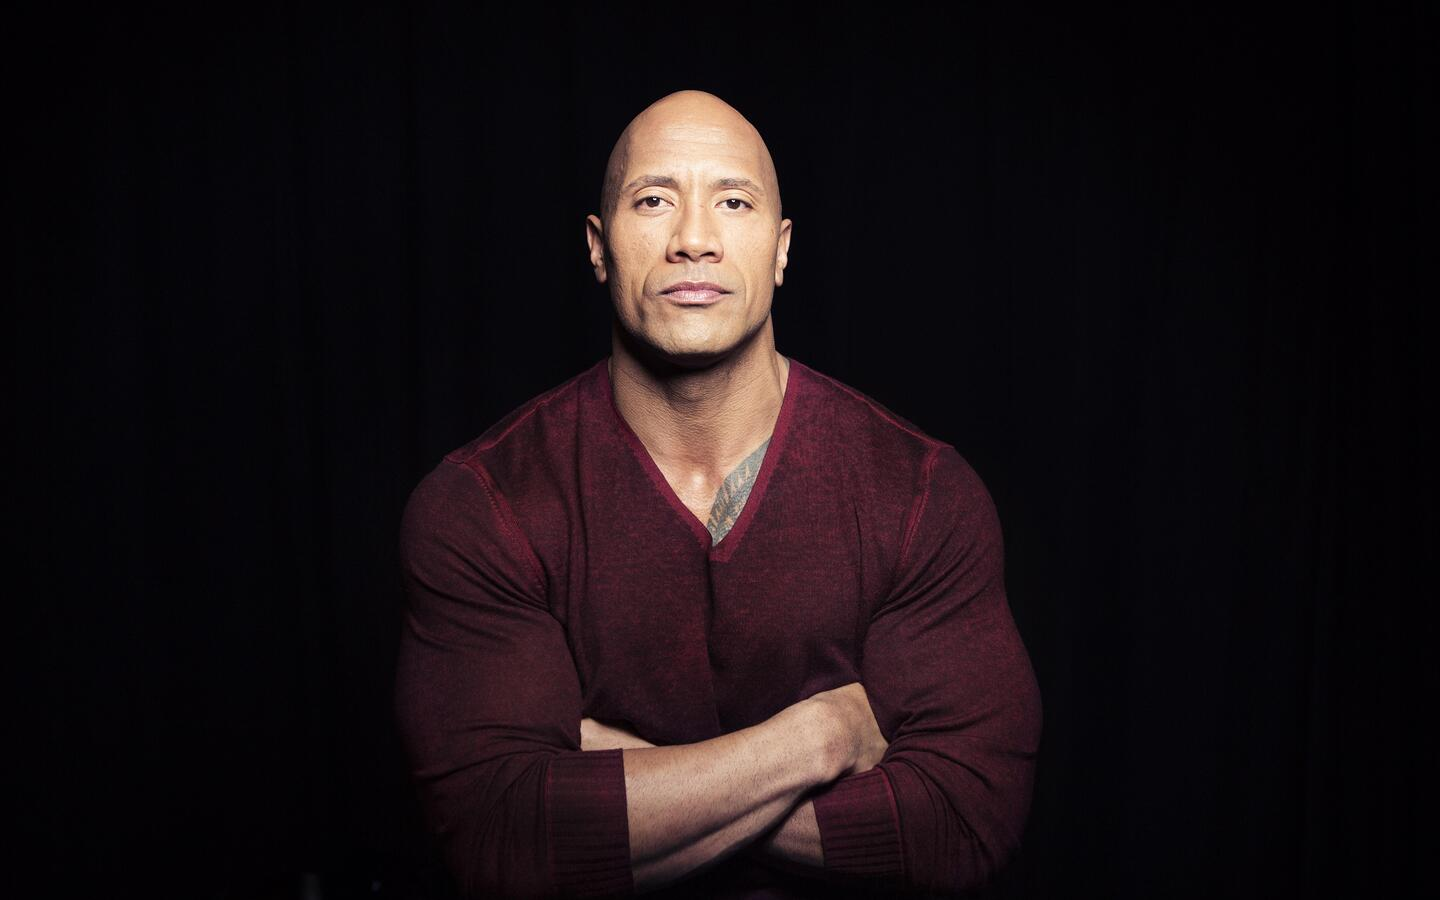 dwayne-johnson-2019-6s.jpg